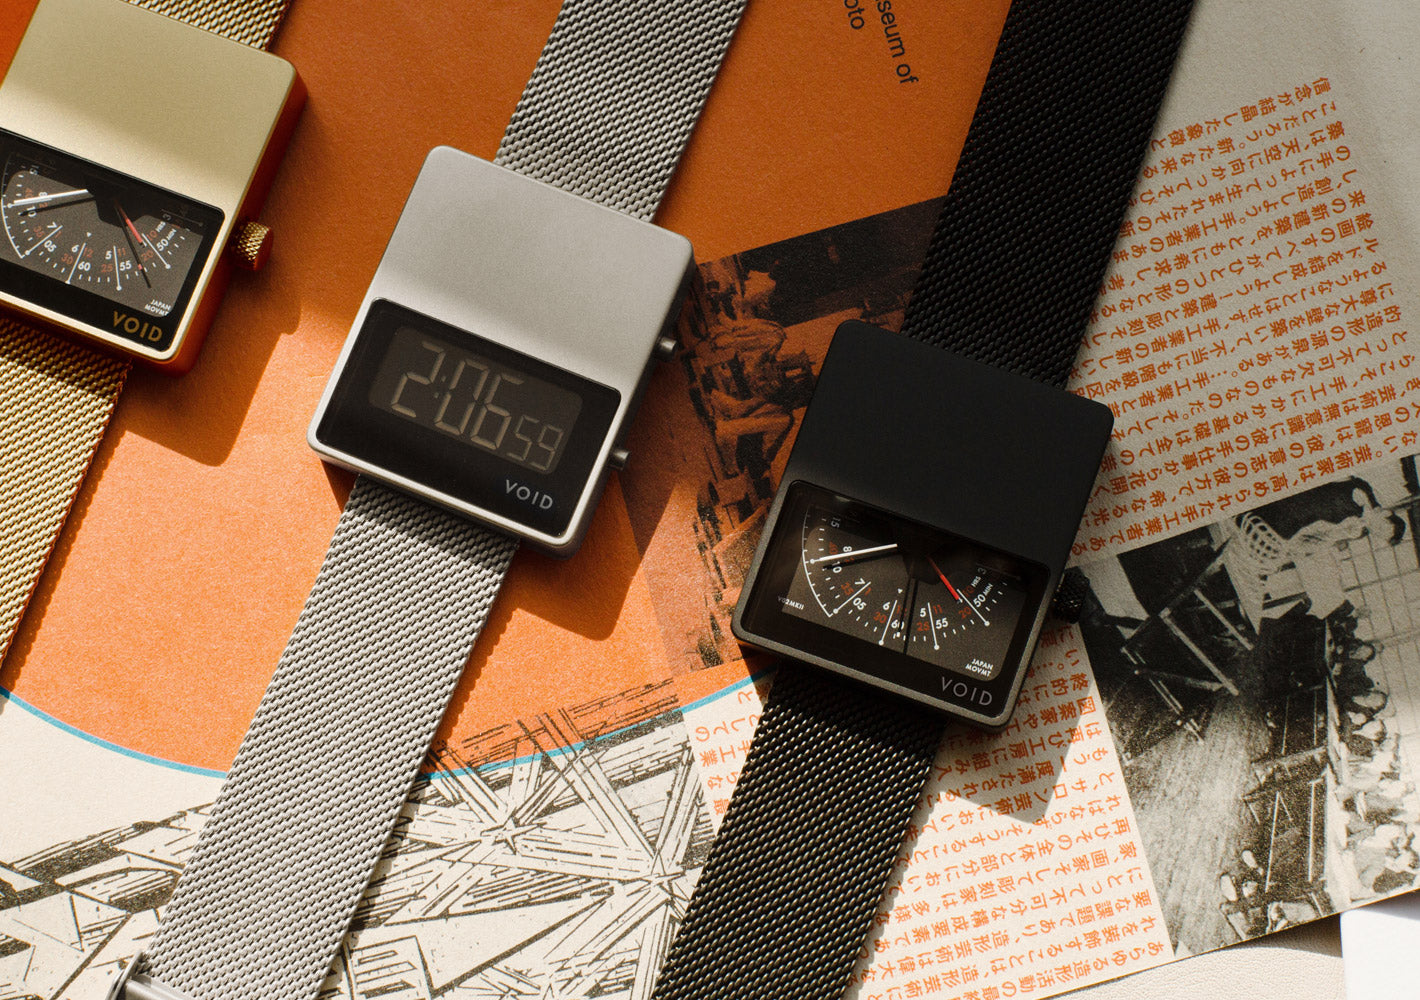 The V02MKII-GO/MG from VOID Watches, designed by David Ericsson.